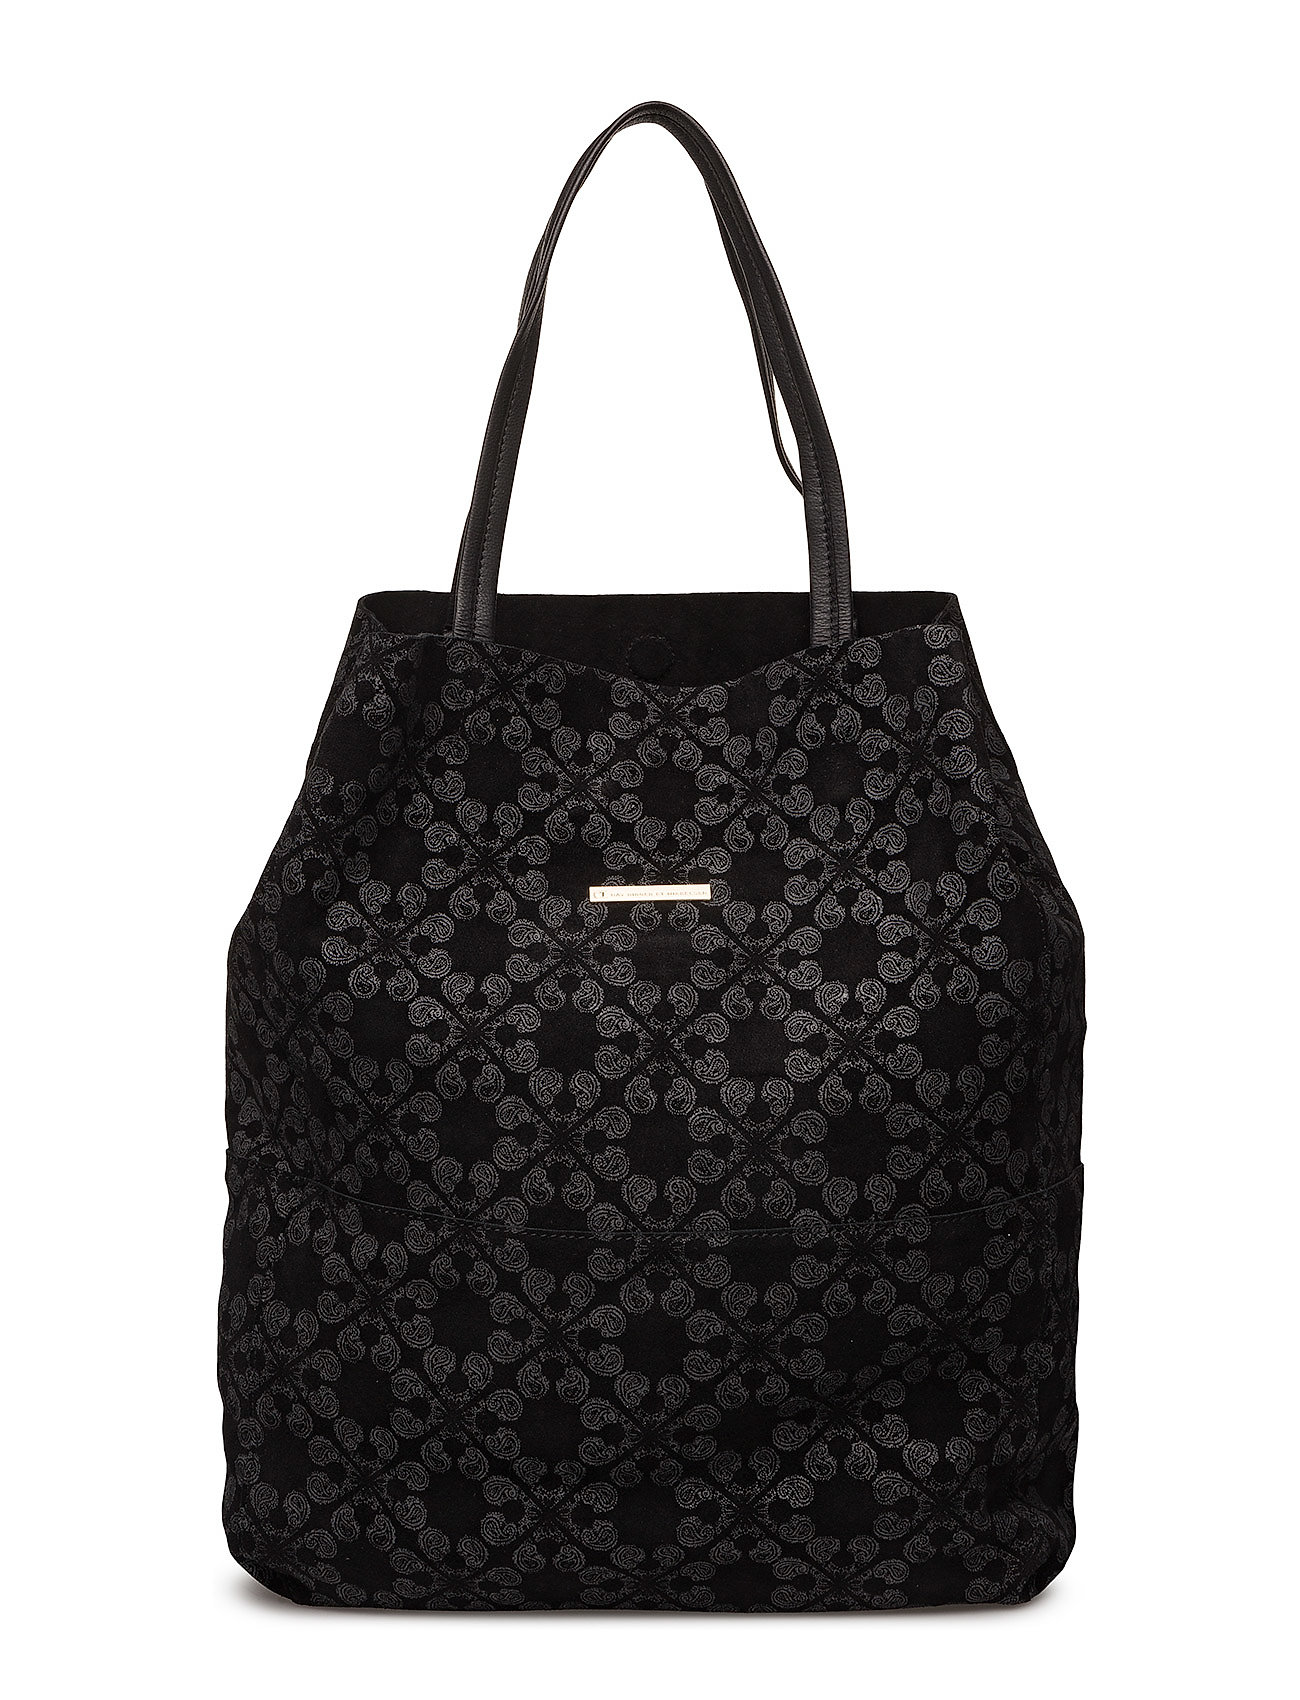 Image of Day Ambi Shopper Shopper Taske Sort DAY ET (3035351475)